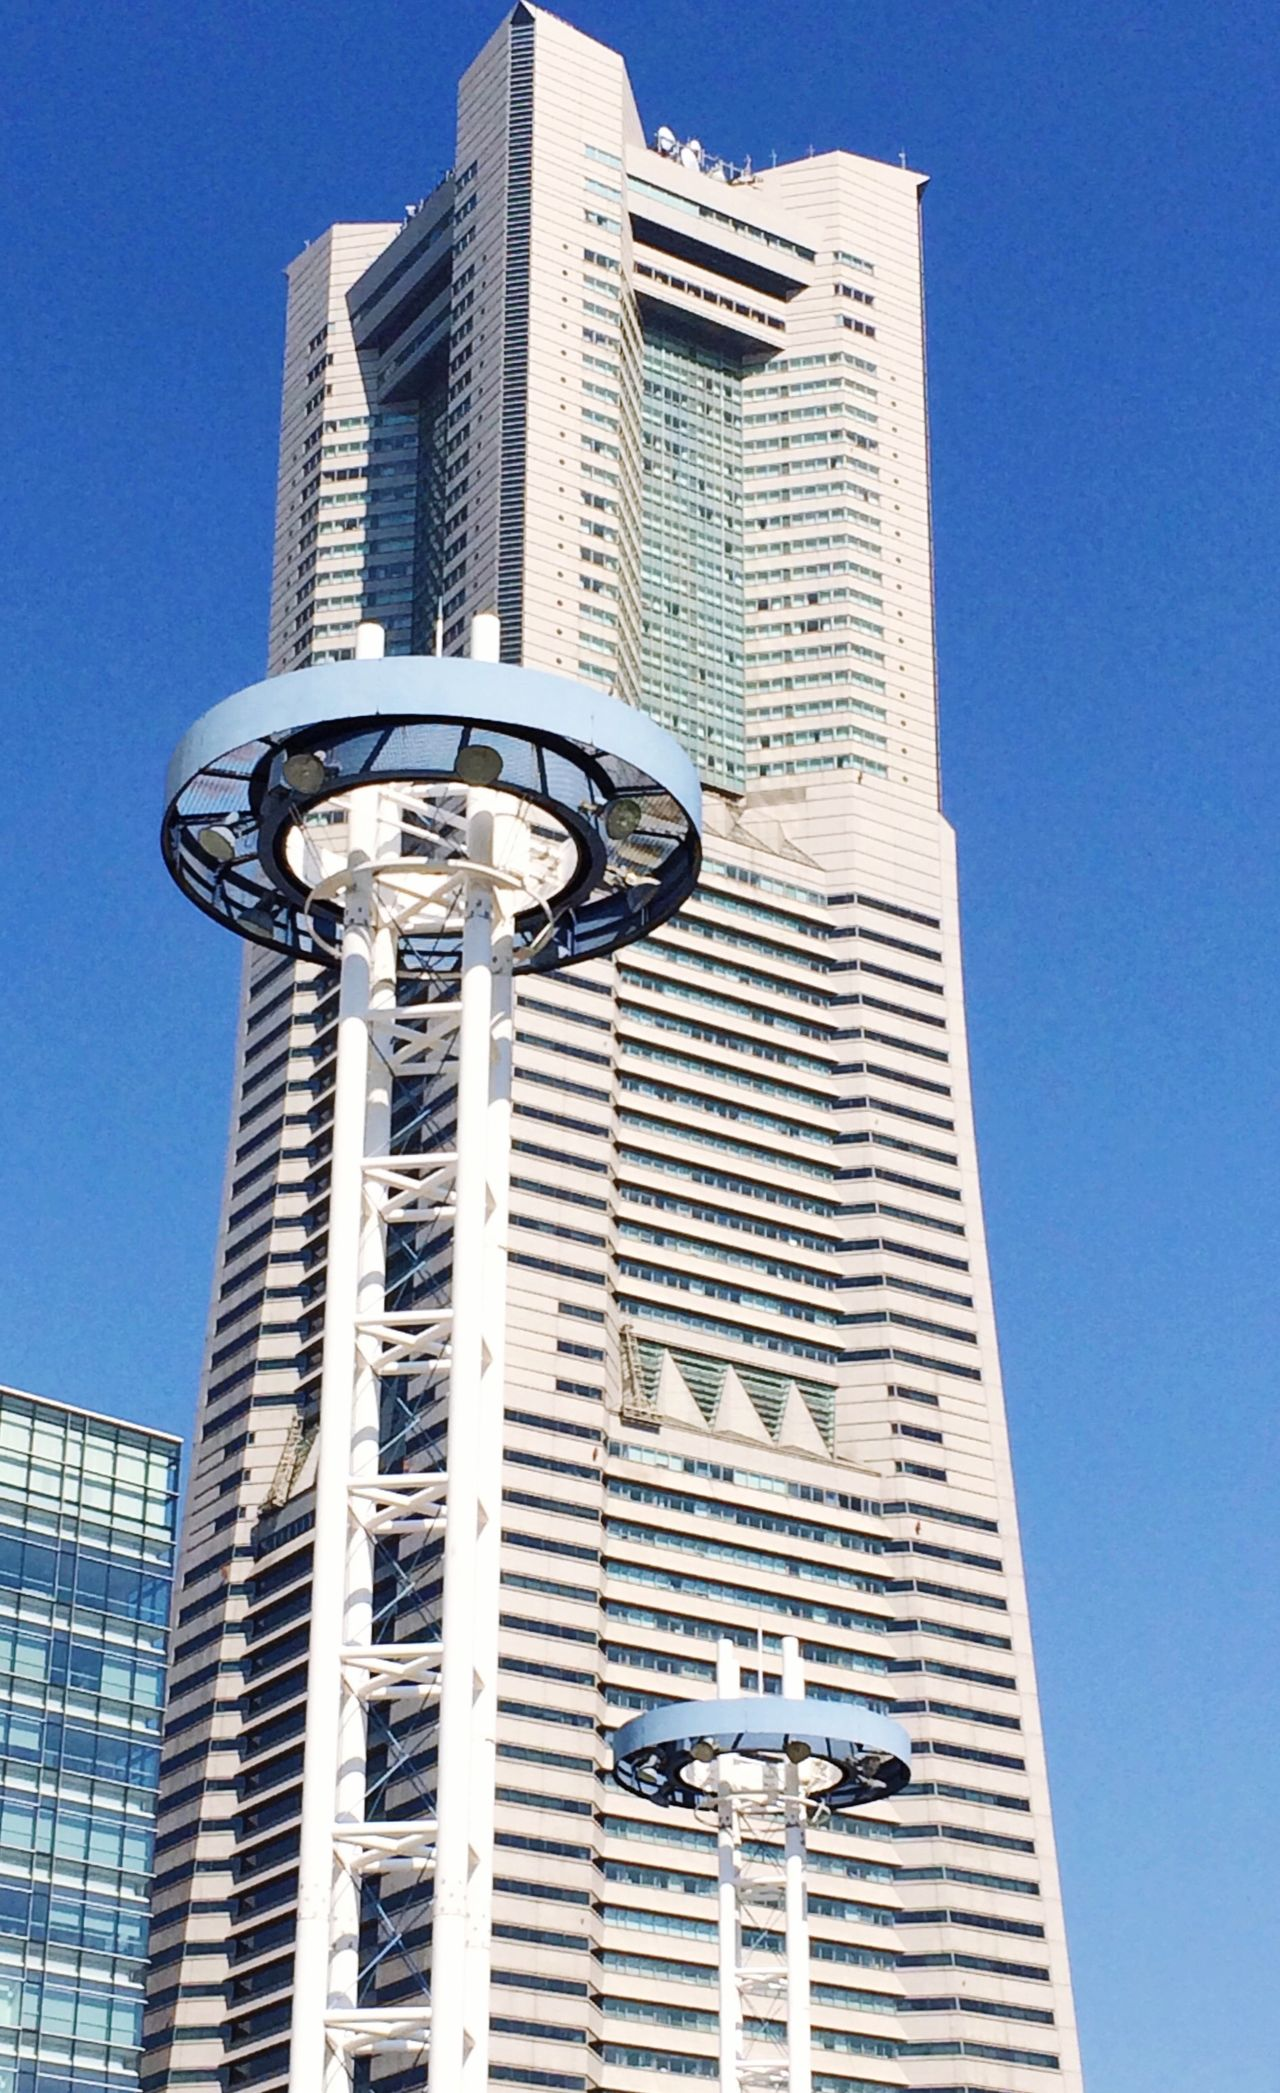 Aweekago I was in Sakuragicho Yokohama in front of Landmarktower 桜木町 横浜 横浜ランドマークタワー Underthebluesky